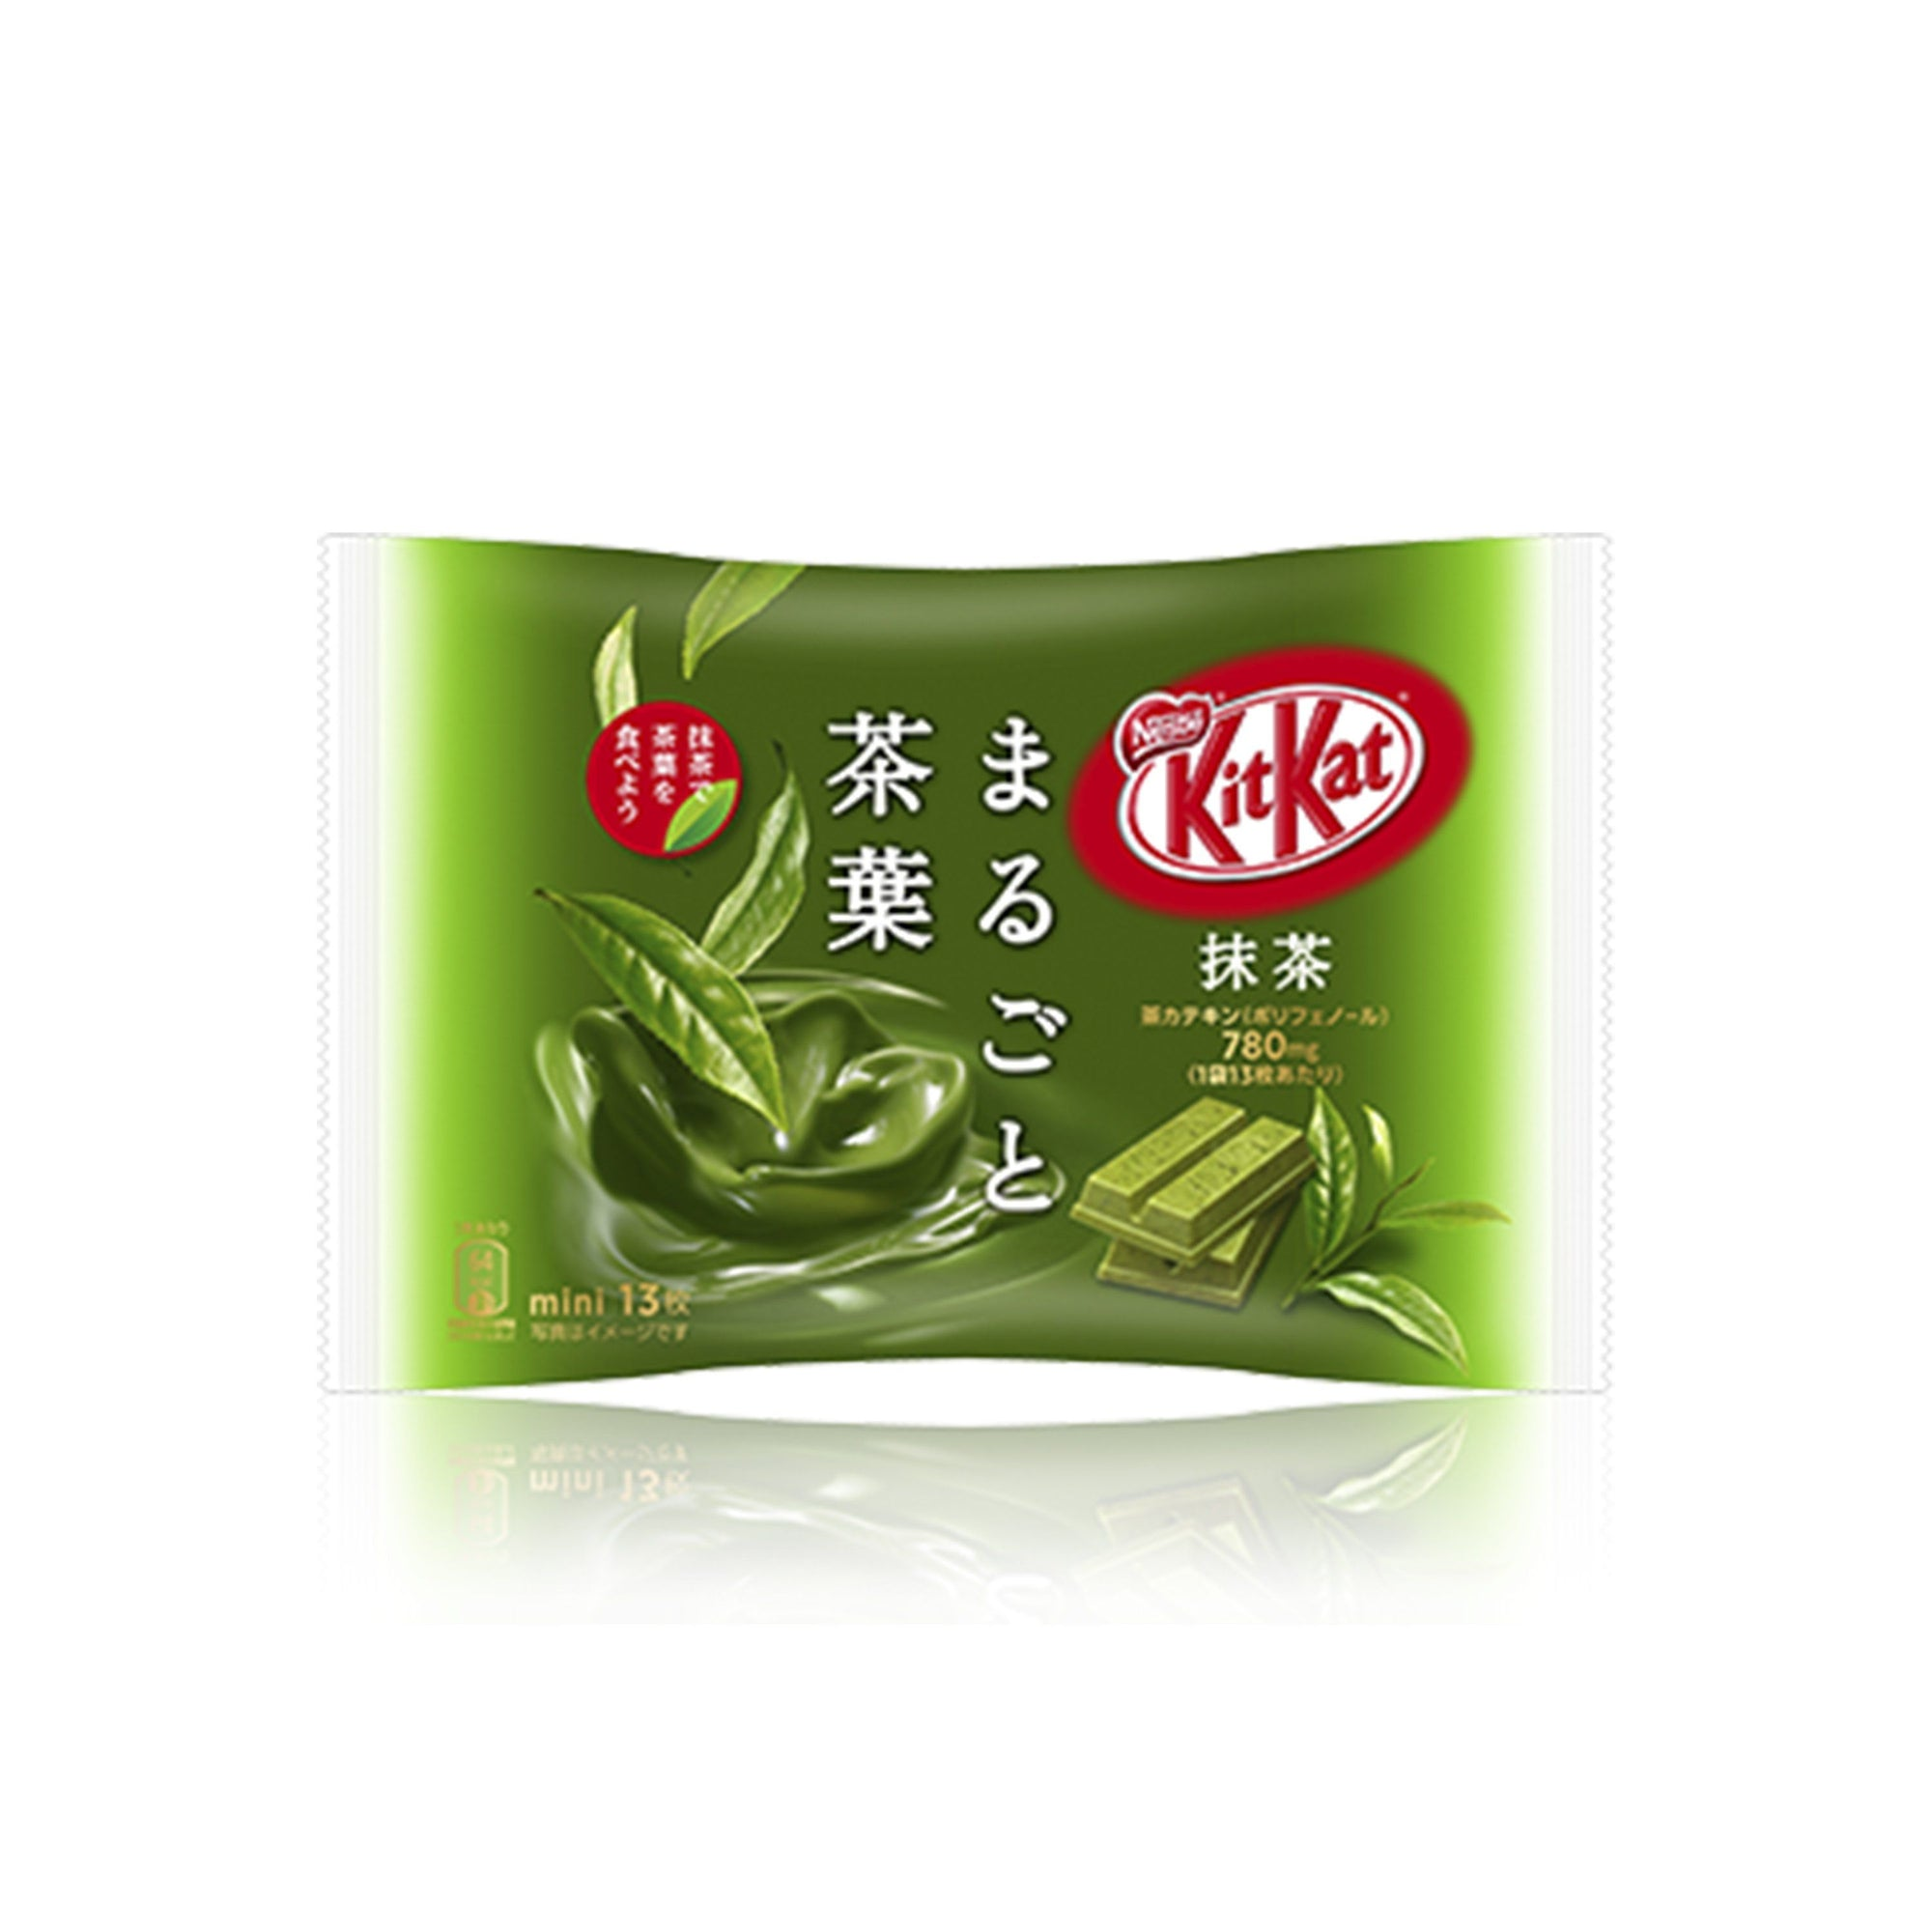 Japanese Kit Kat: Matcha Leaves